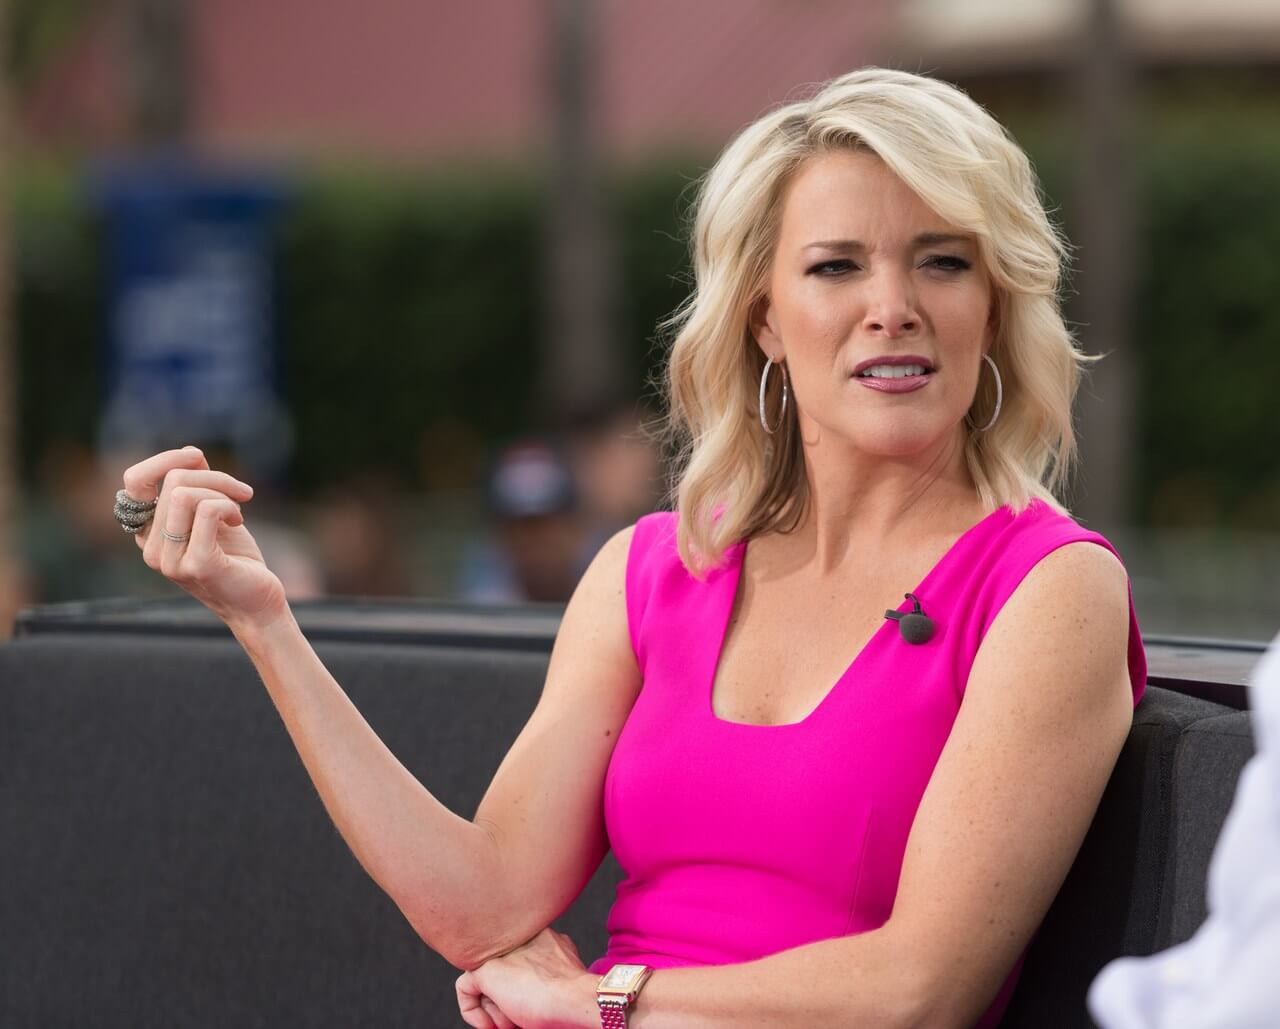 megyn kelly hot busty pictures